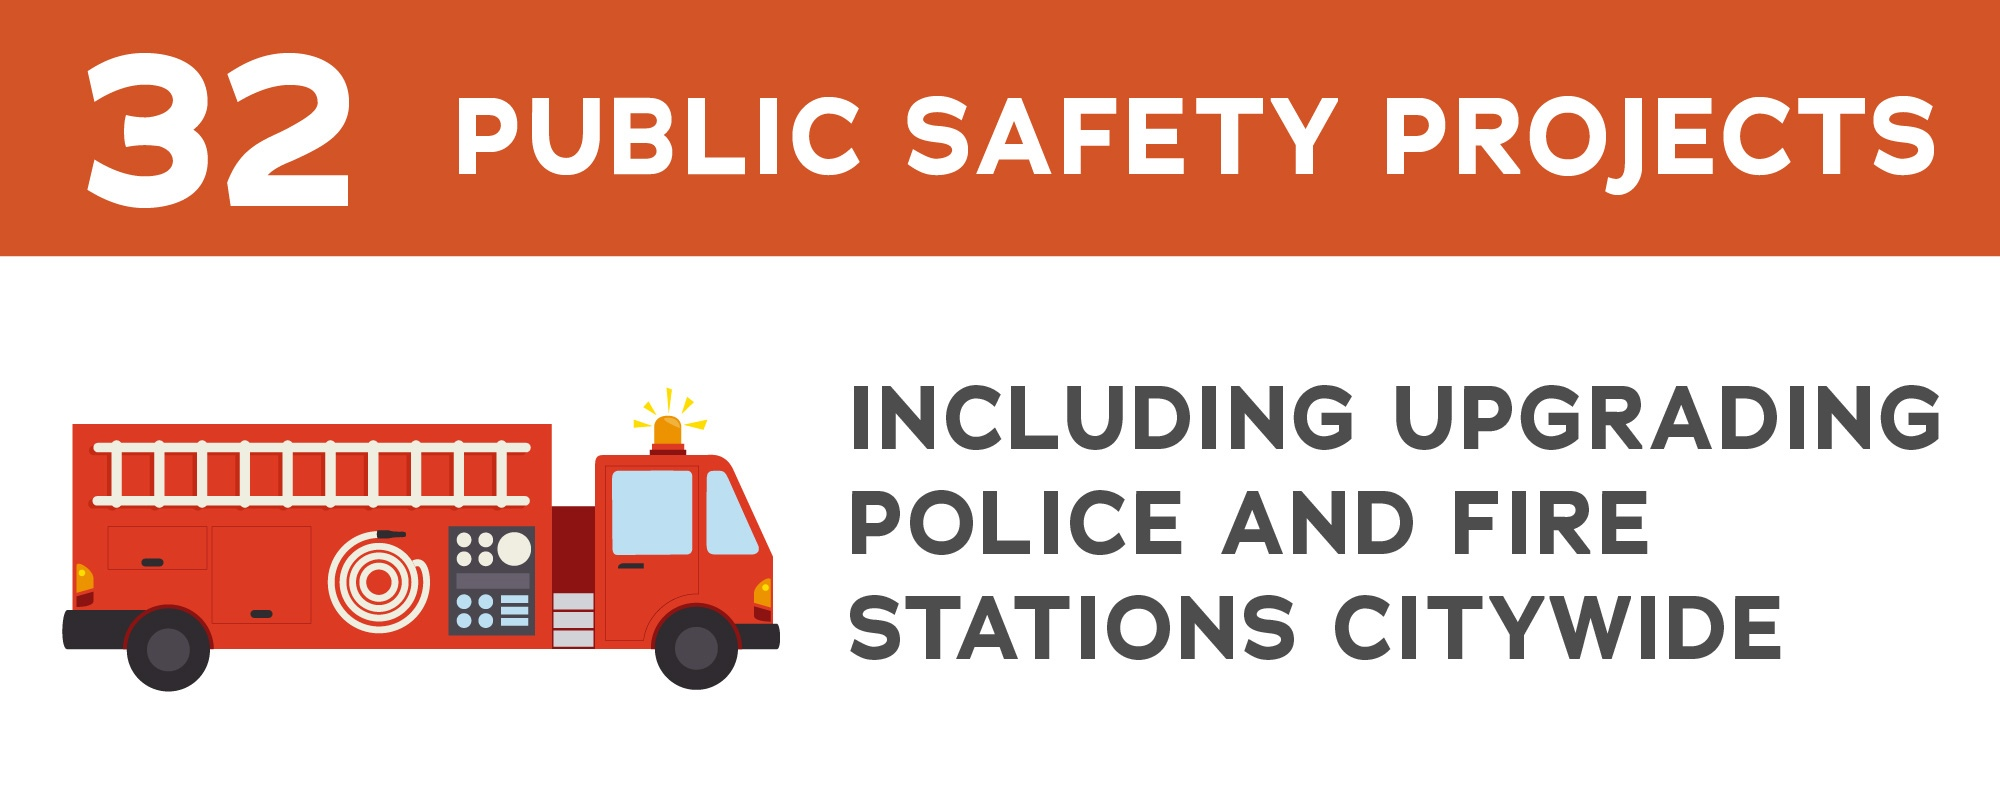 32 Public Safety Projects graphic